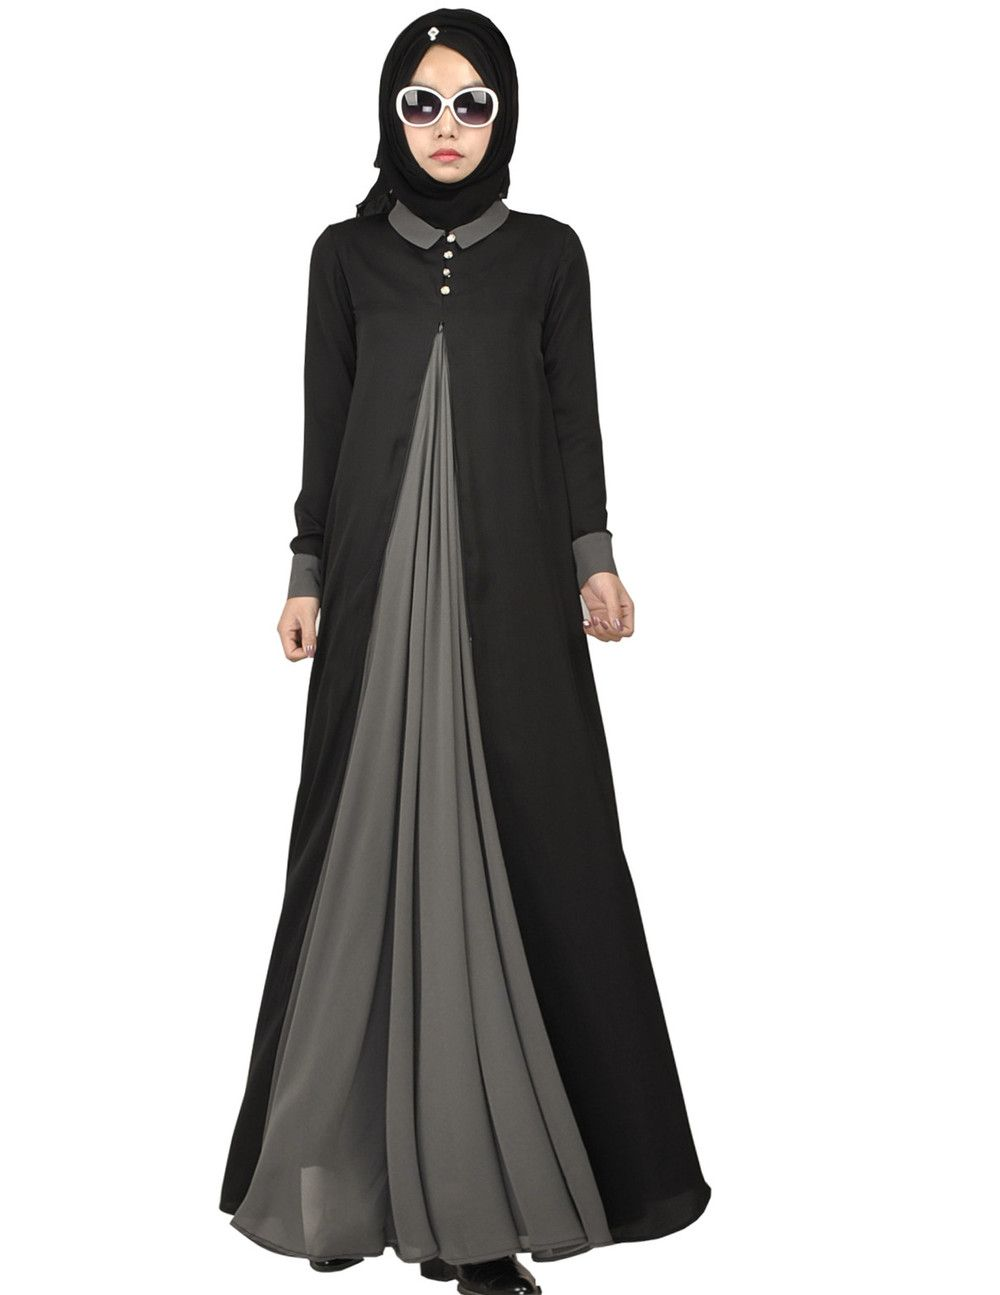 2016 New Arrival Islamic Muslim Long Dress For Women Malaysia Abayas In Dubai Turkish Ladies